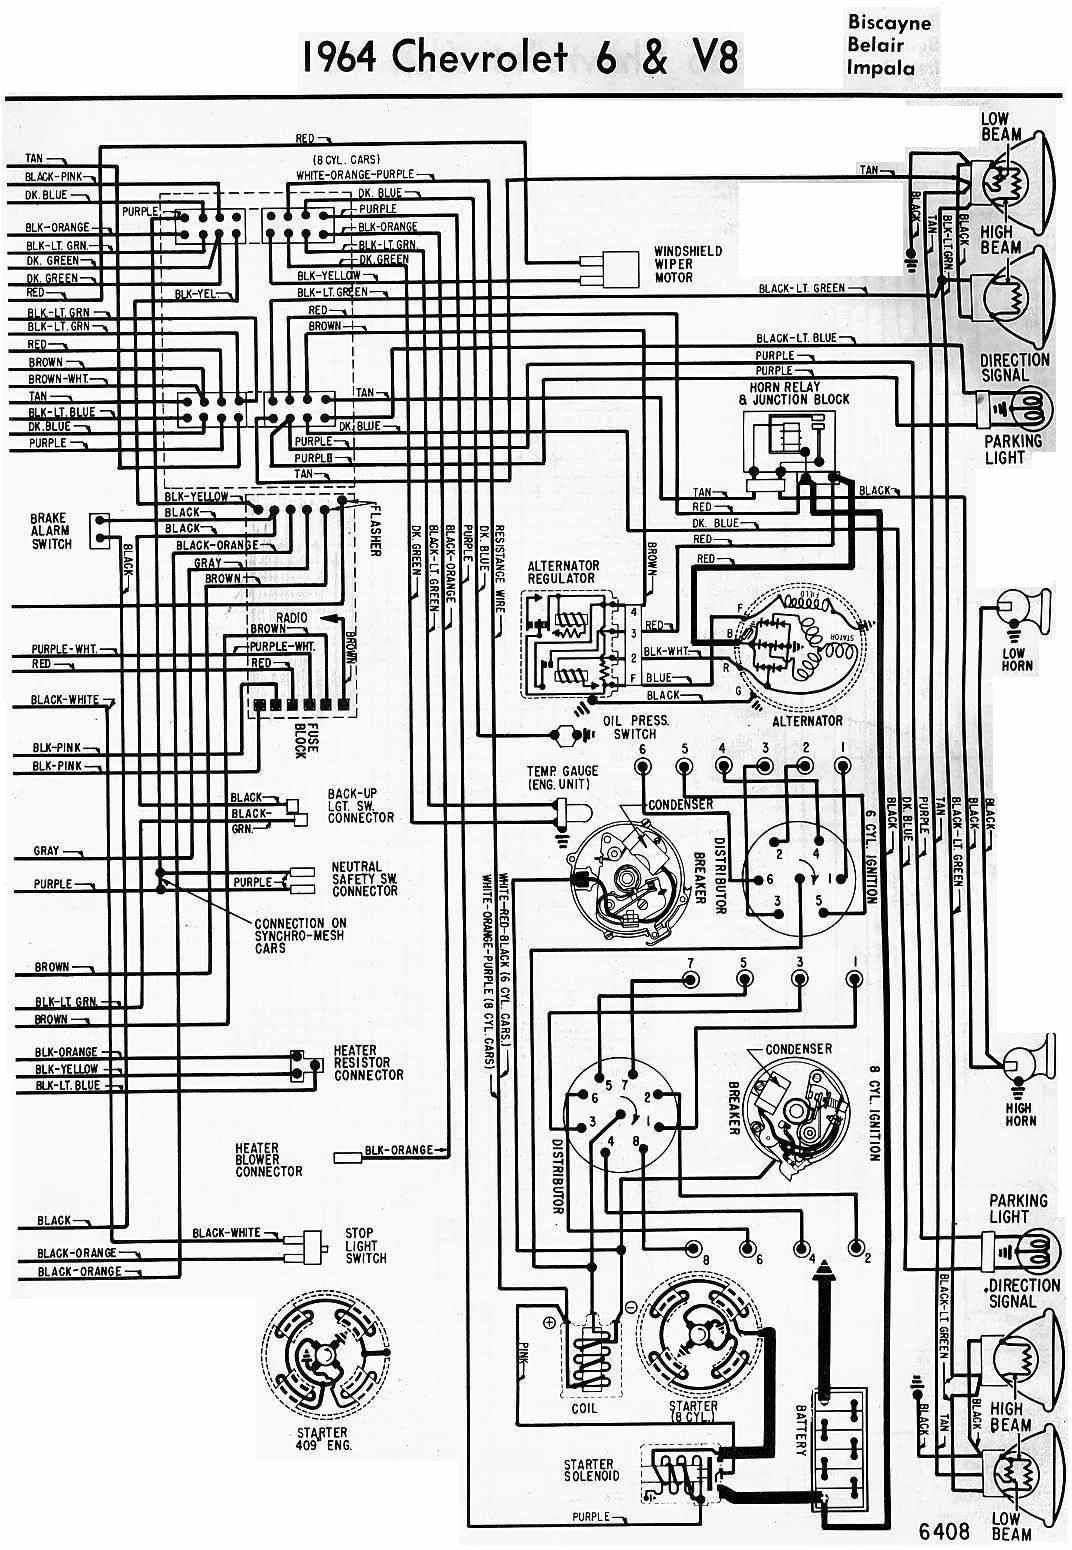 small resolution of 1964 chevrolet wiring diagram wiring diagram 64 impala wiring diagram wiring diagram reviewgm fuse box diagram